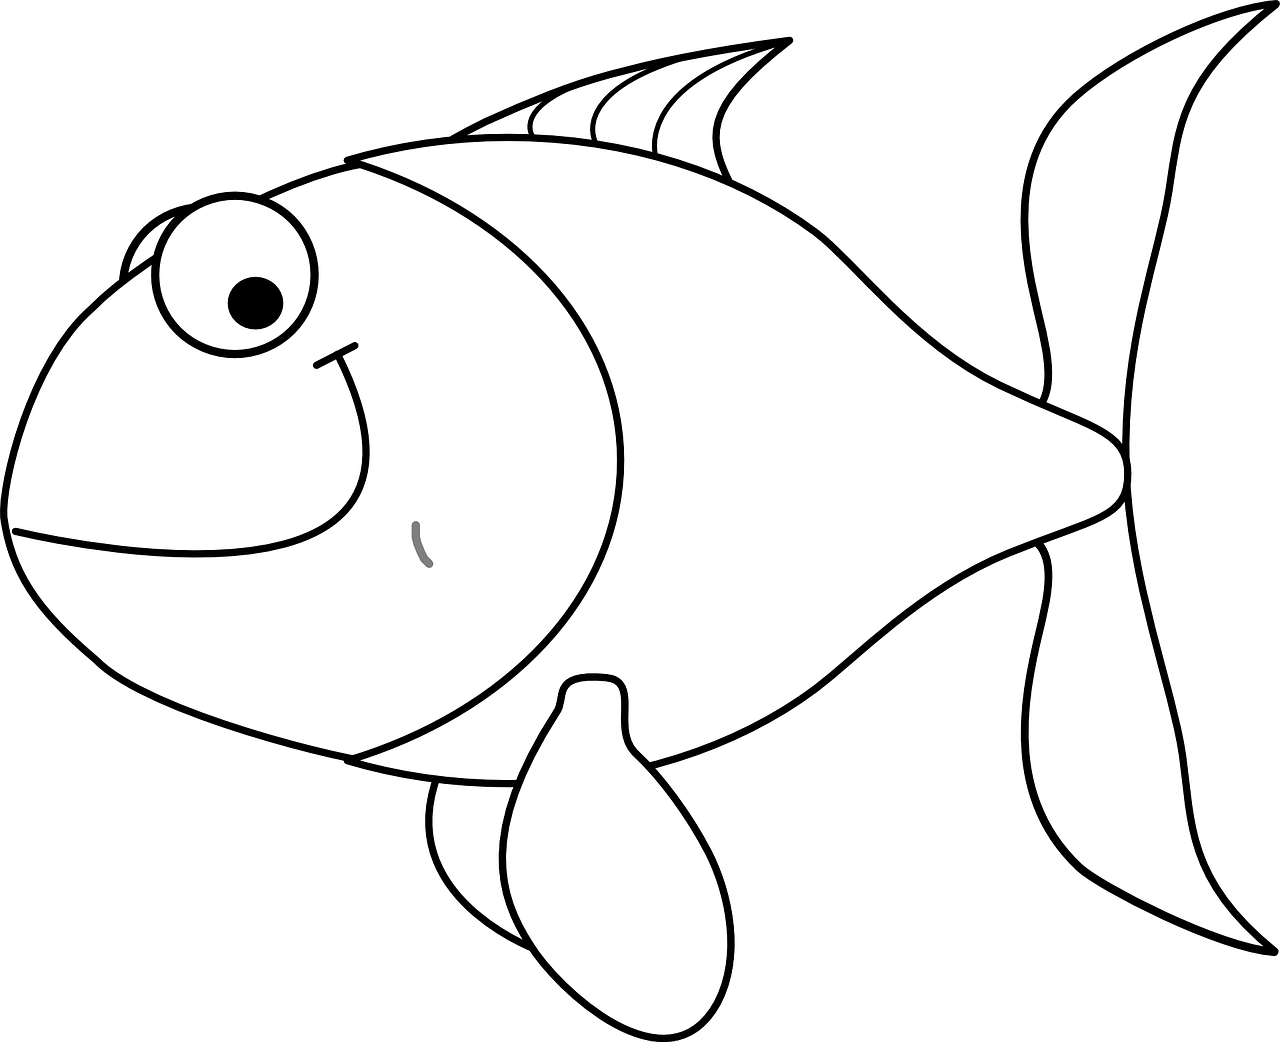 coloring fish pages fish coloring pages for kids 14 pics how to draw in 1 coloring pages fish